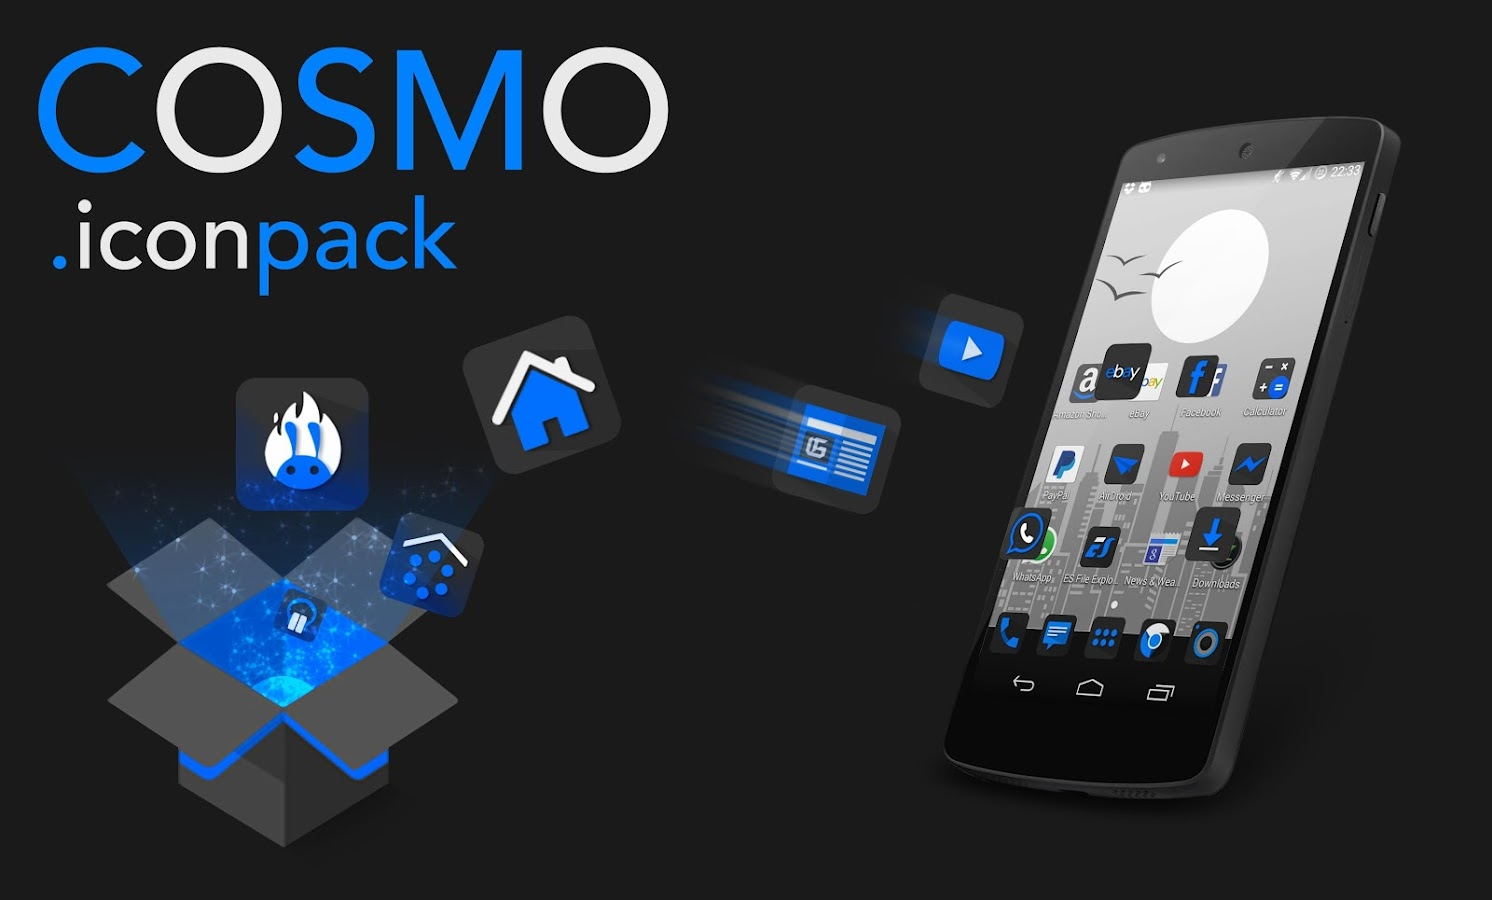 Cosmo - Icon pack Screenshot 0